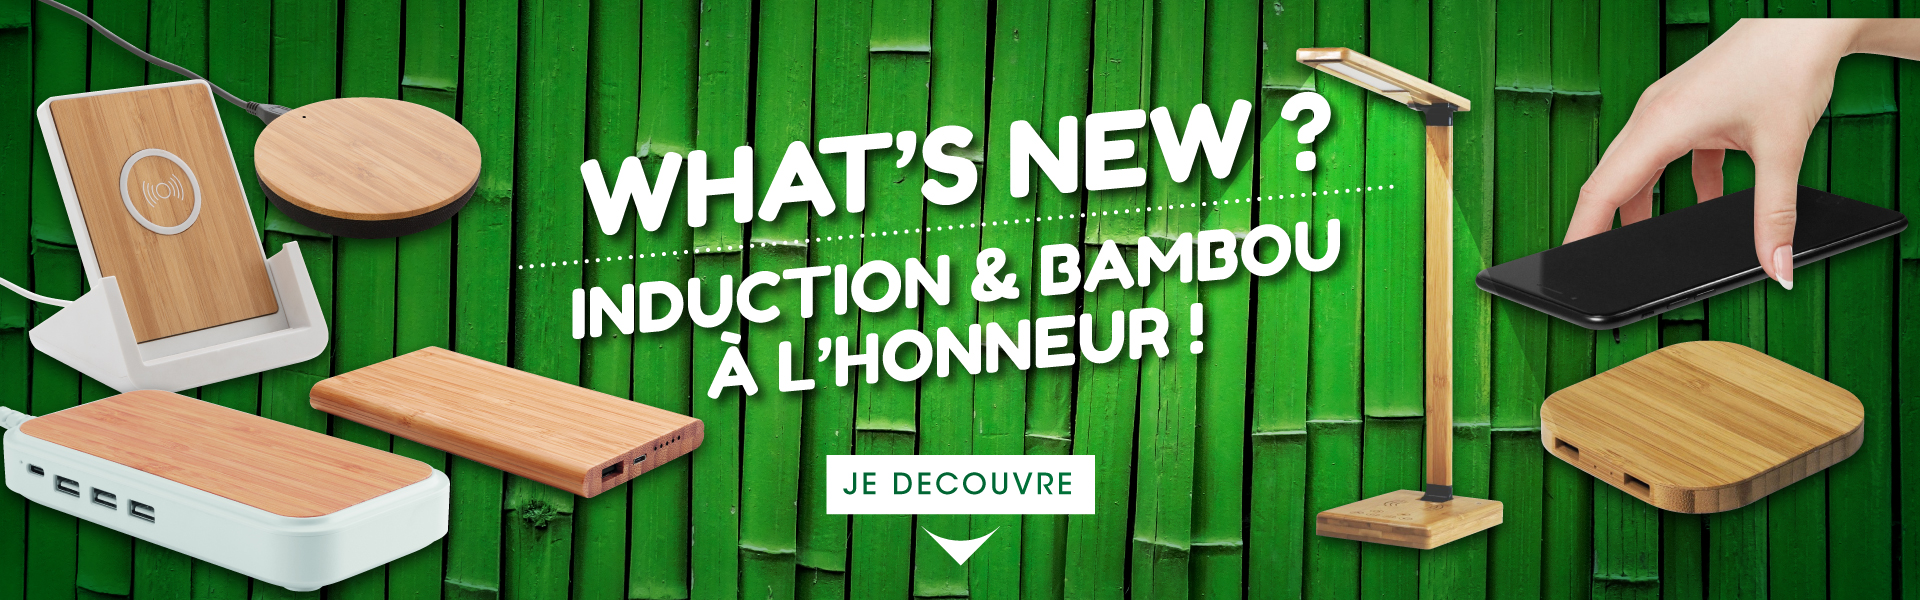 Induction & bambou à l'honneur !